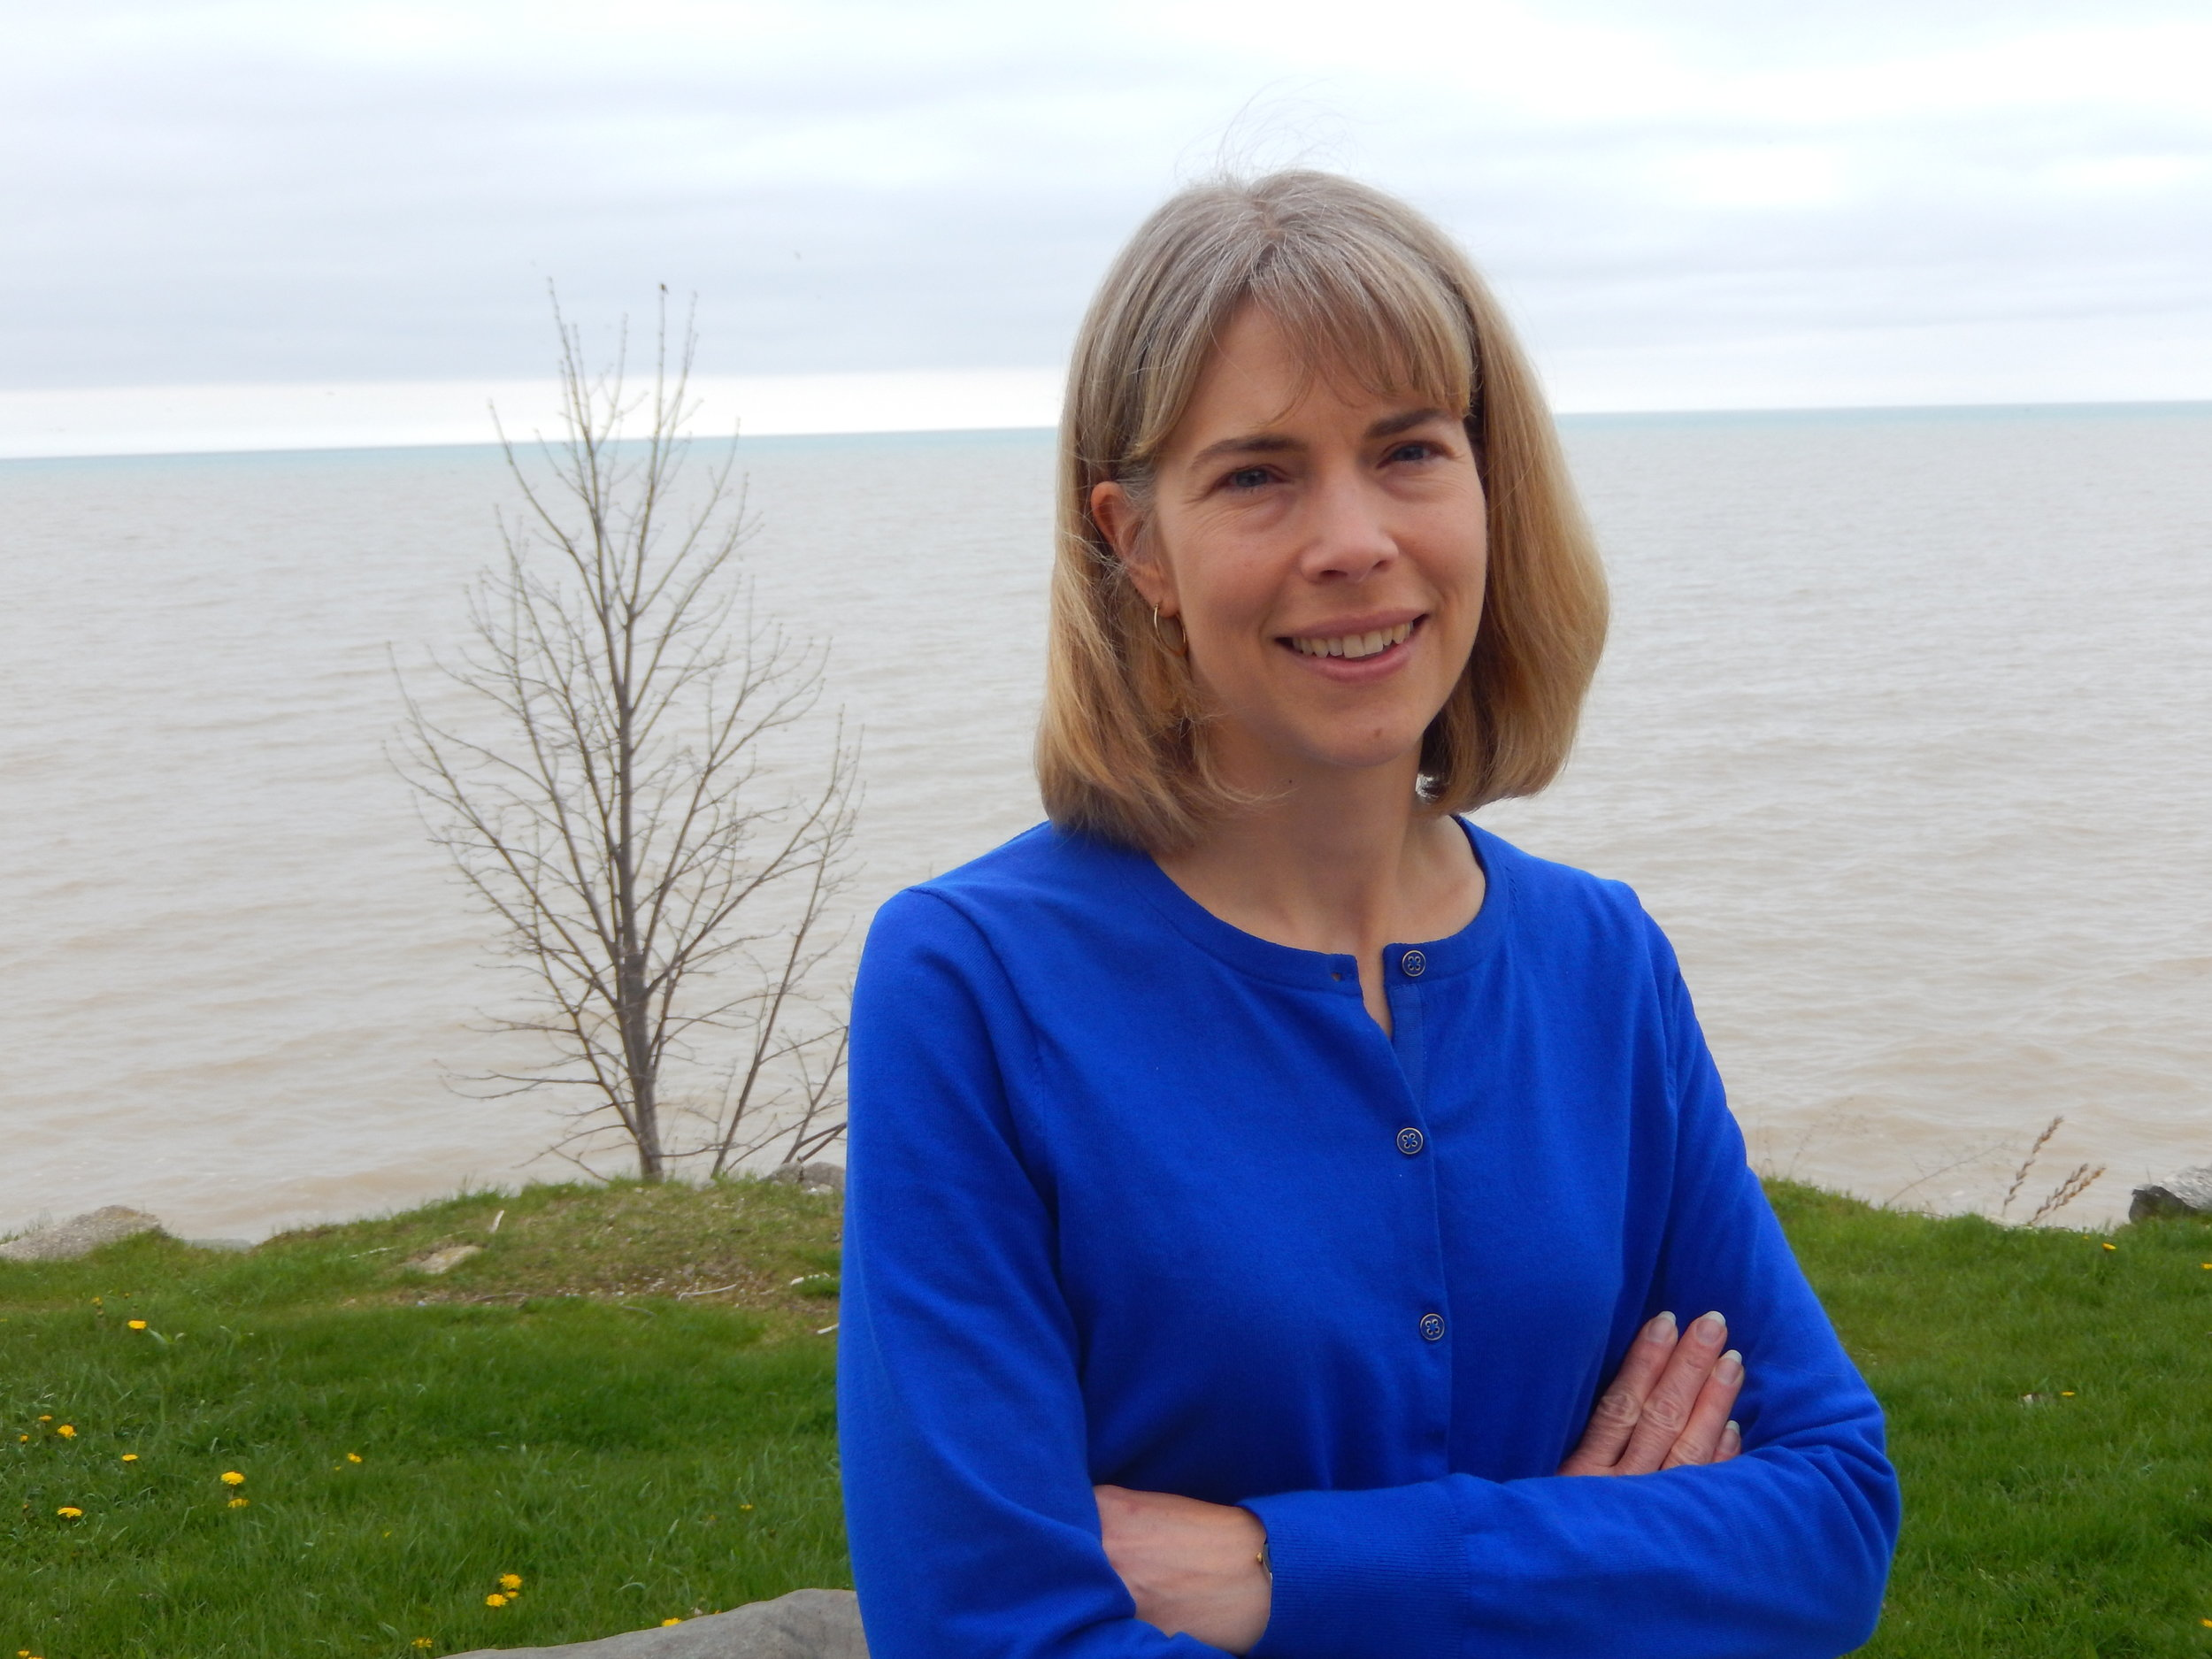 Elizabeth Hellman is one of Sweet Water's newest board members. We sat down to chat about her thoughts as an Environmental Engineer and what she's noticed over her career at WEC Energy Group subsidiaries in Milwaukee.